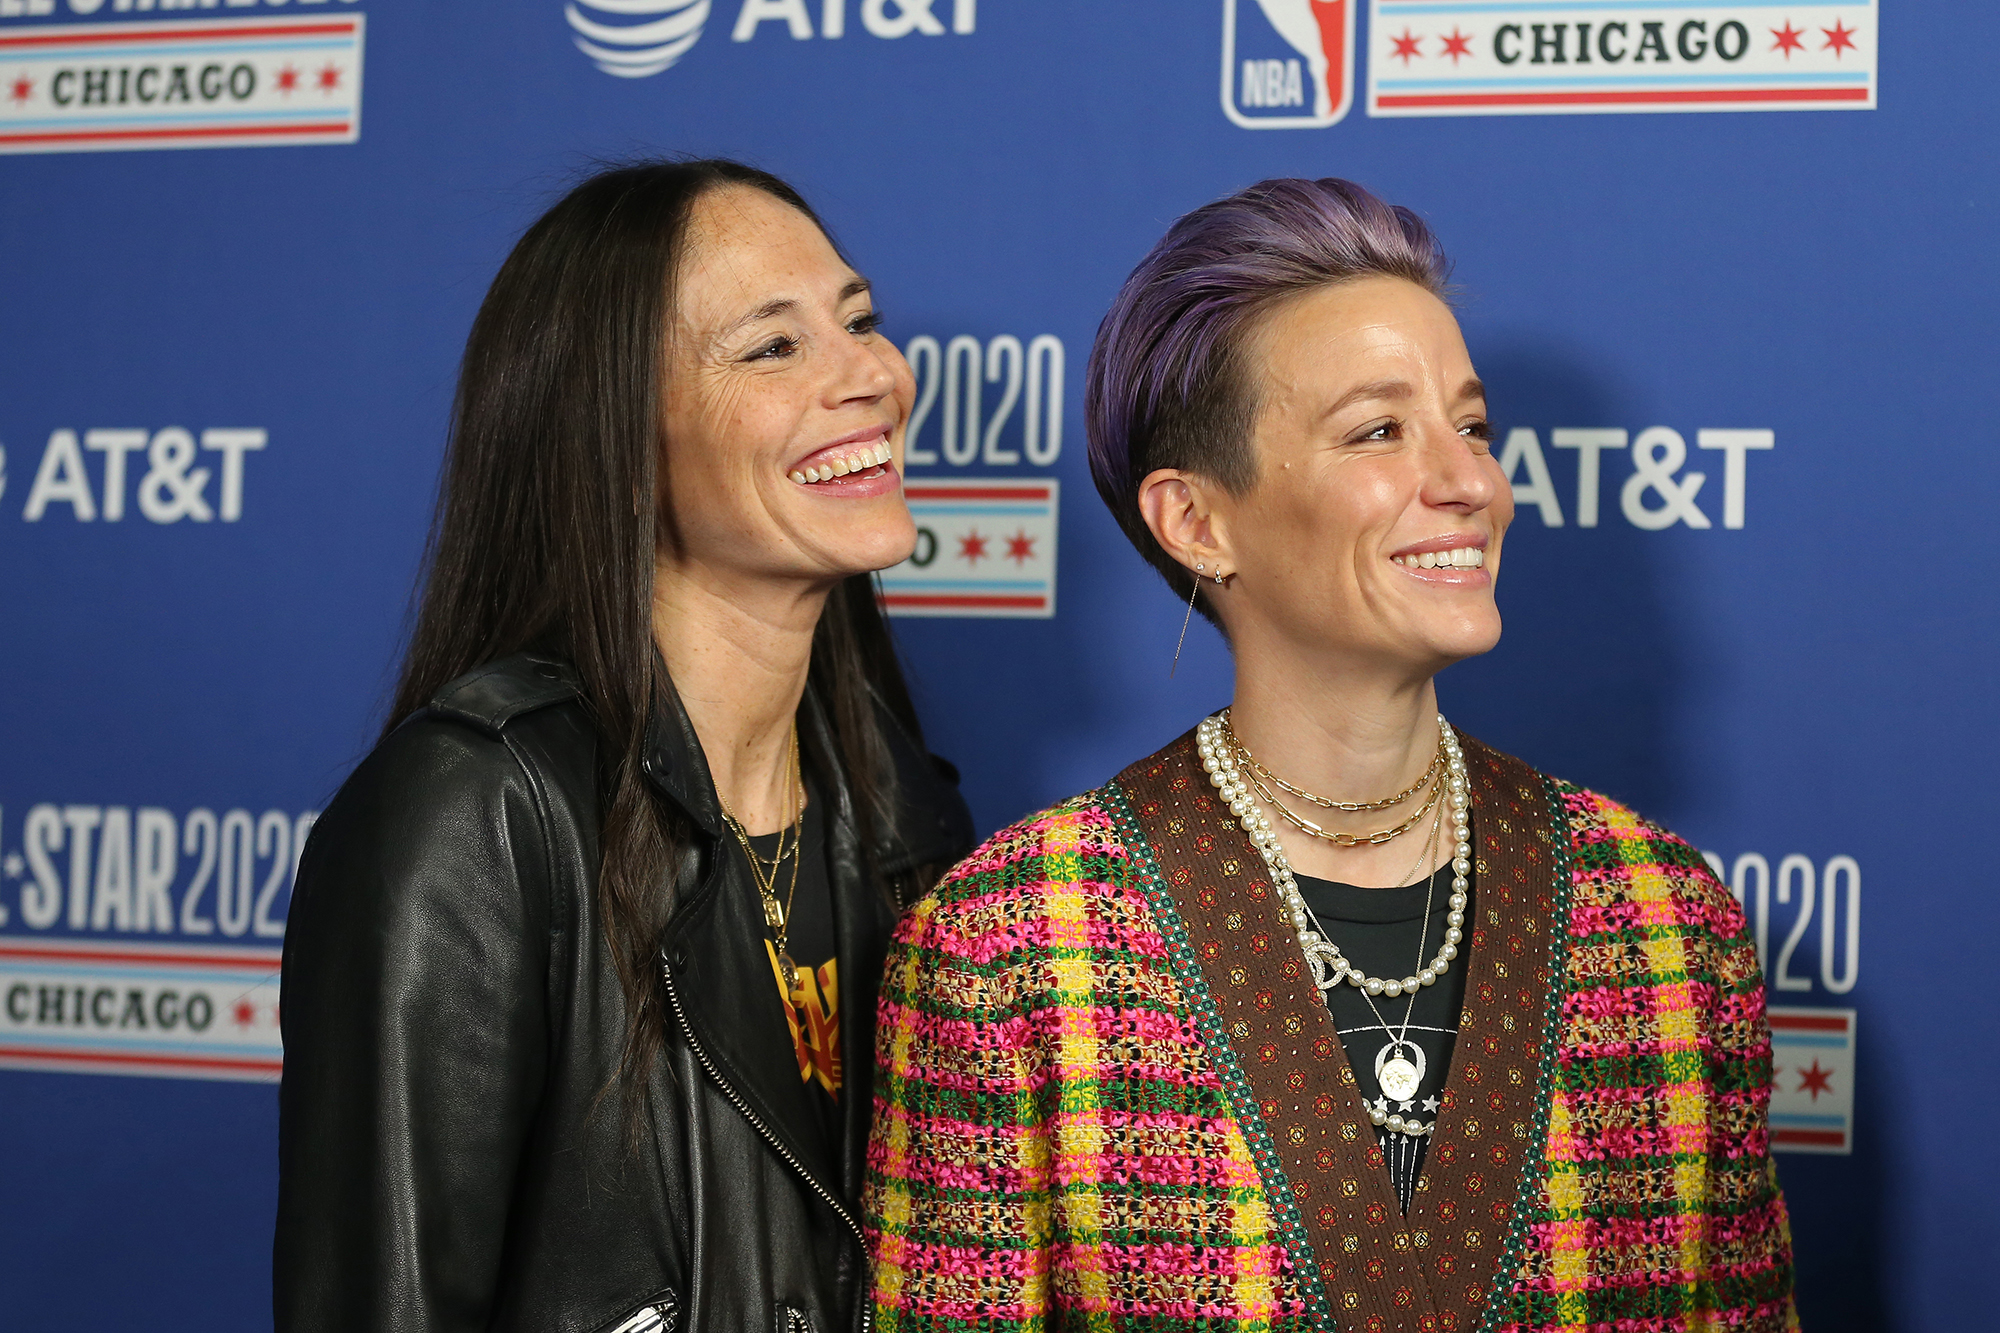 Sue Bird posts photo with Megan Rapinoe down on one knee presenting her a ring